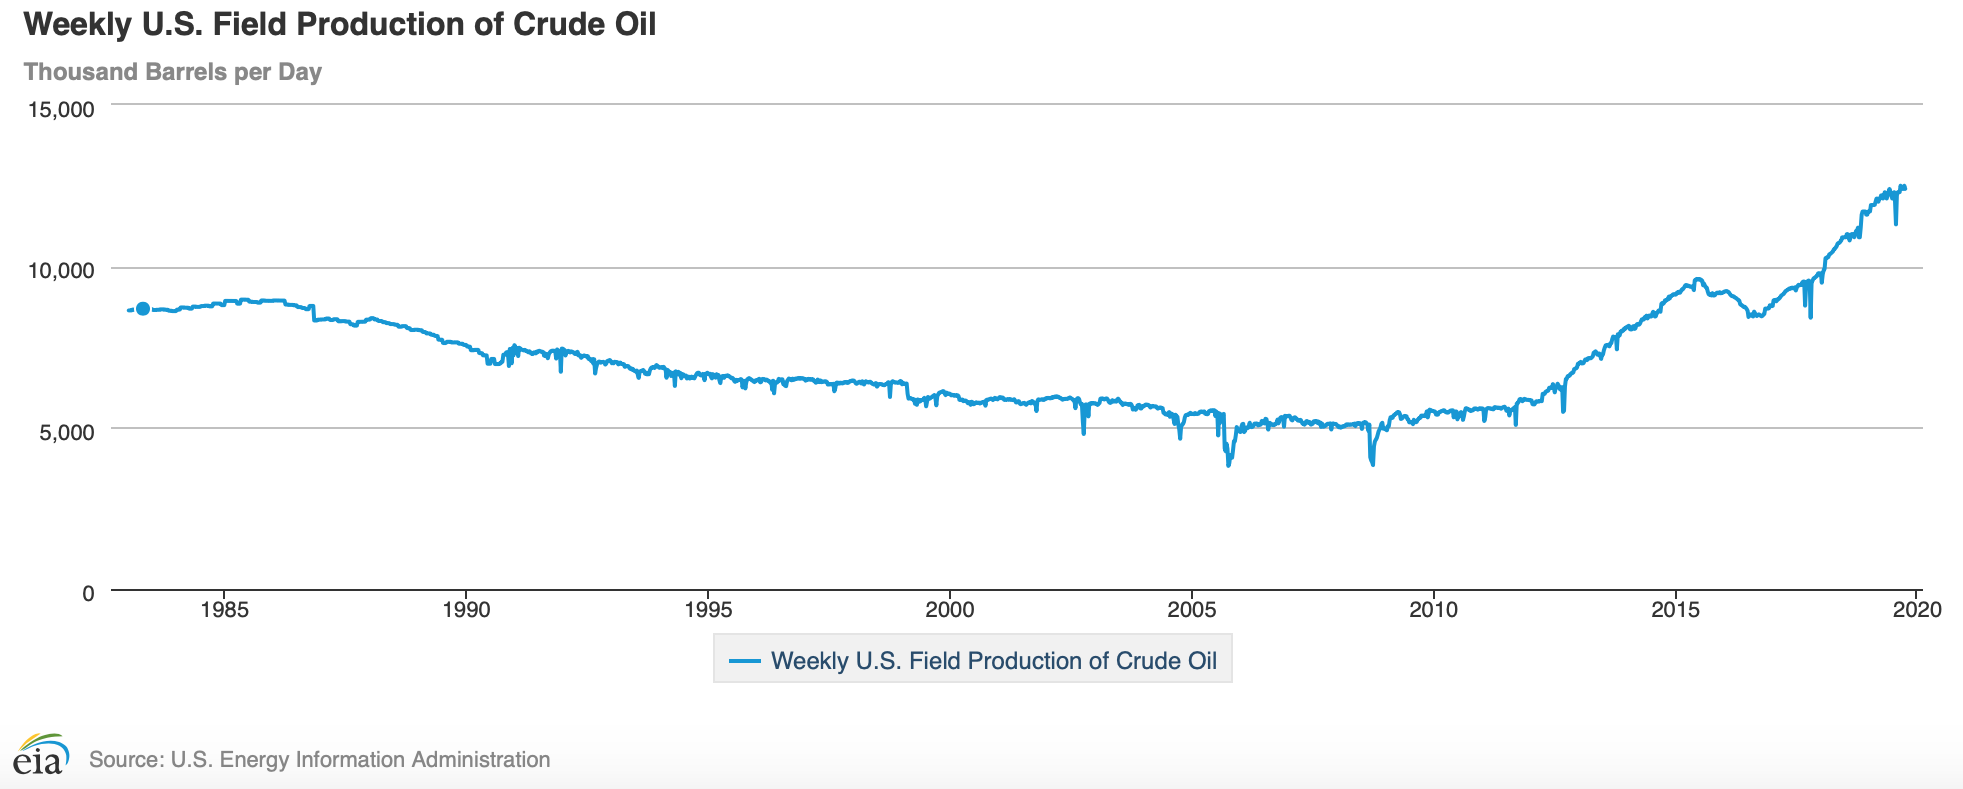 Weekly U.S. Field Production of Crude Oil.png